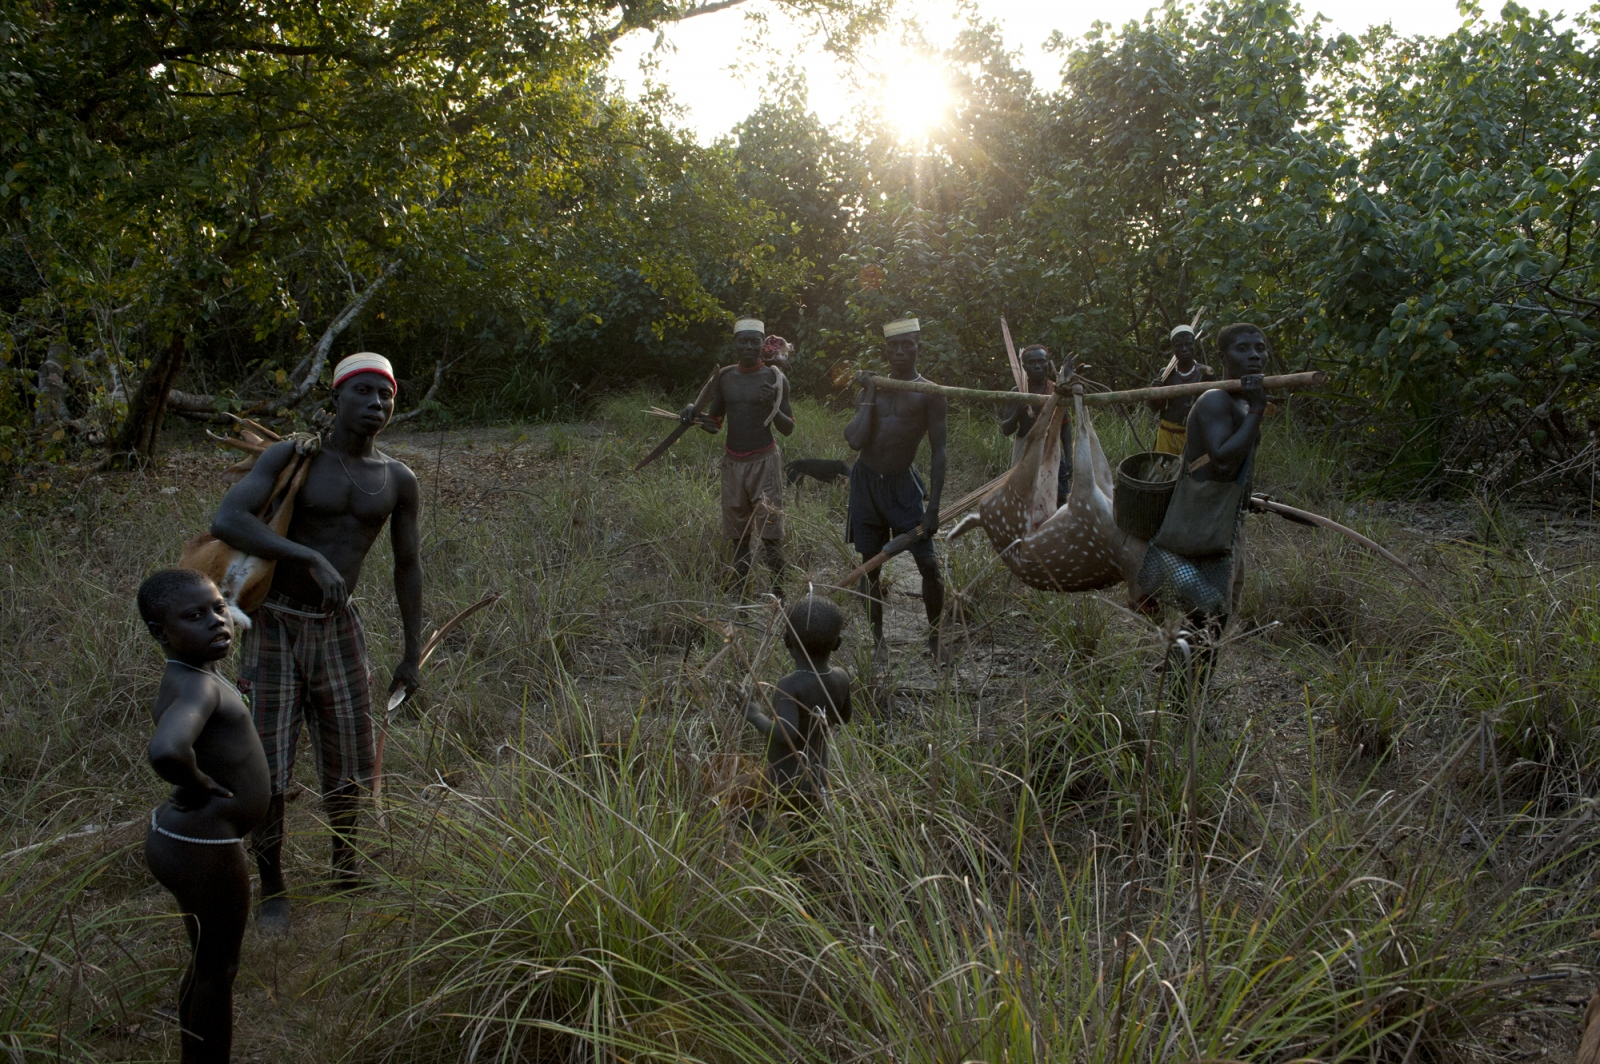 Art and Documentary Photography - Loading jarawa_beilver_treturn_from_hunting.jpg